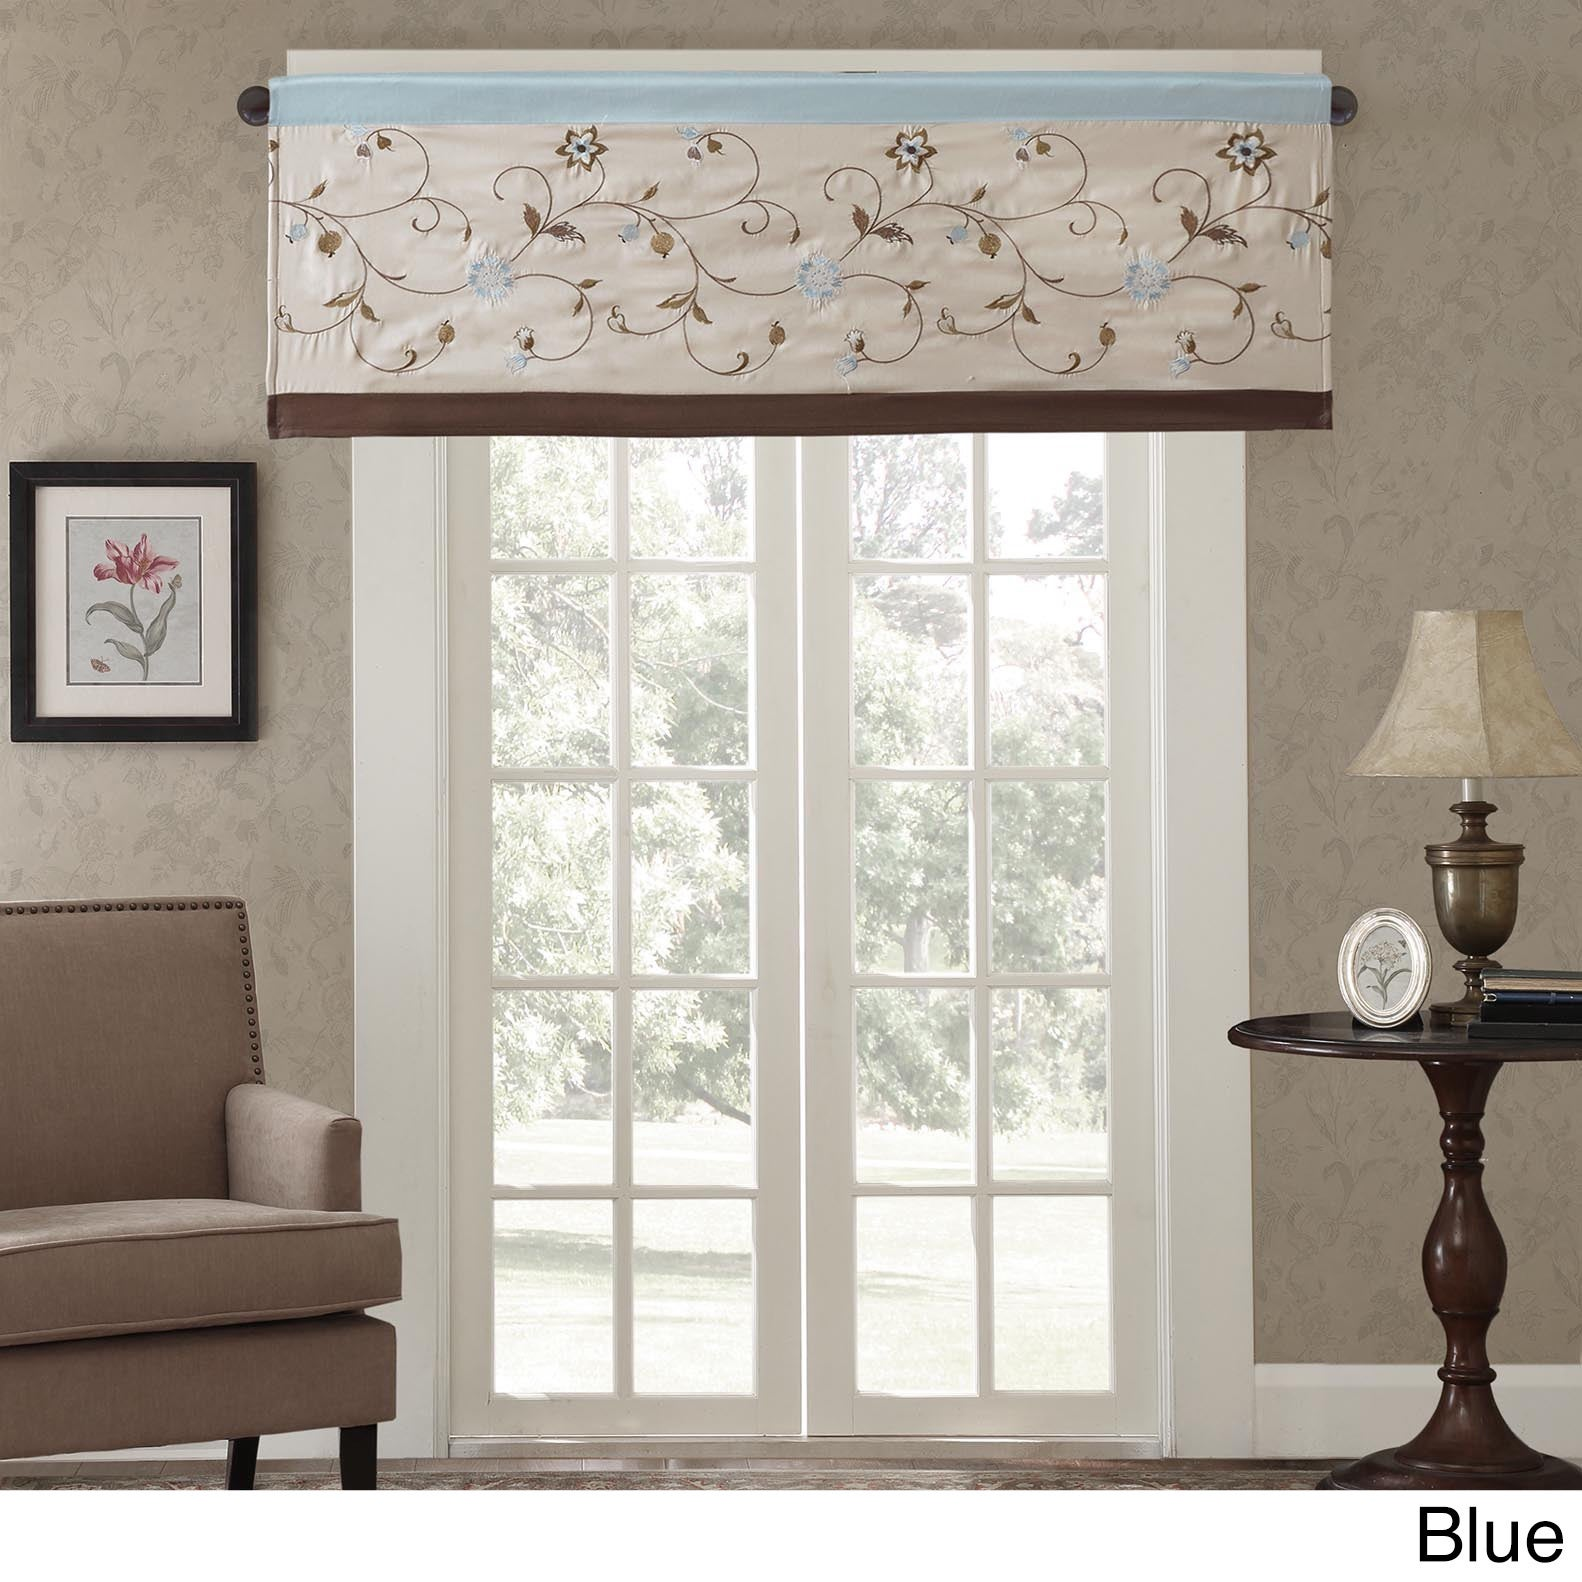 x p by click to floral blue filler valance expand waverly duchess kitchen regency